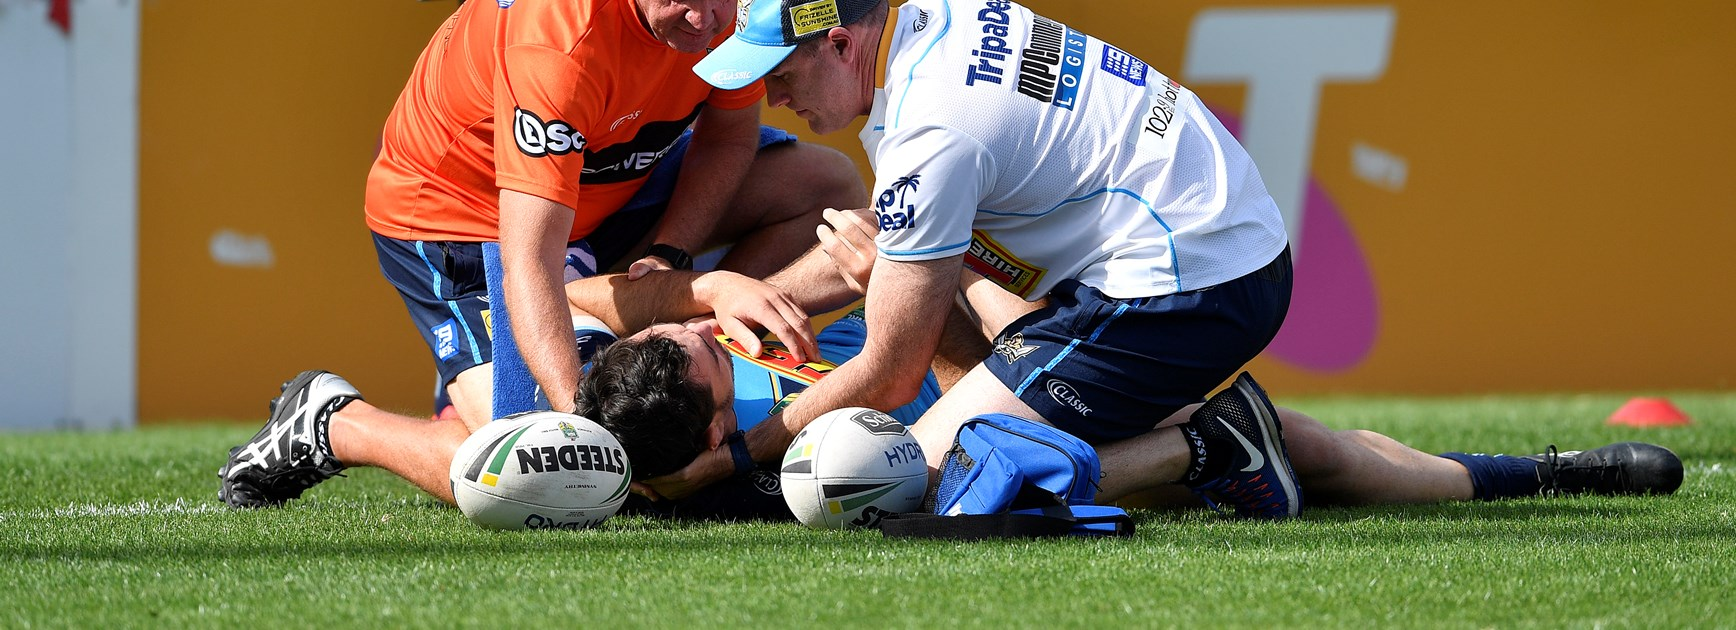 Titans forward Morgan Boyle receives treatment after a head clash with teammate Bryce Cartwright.